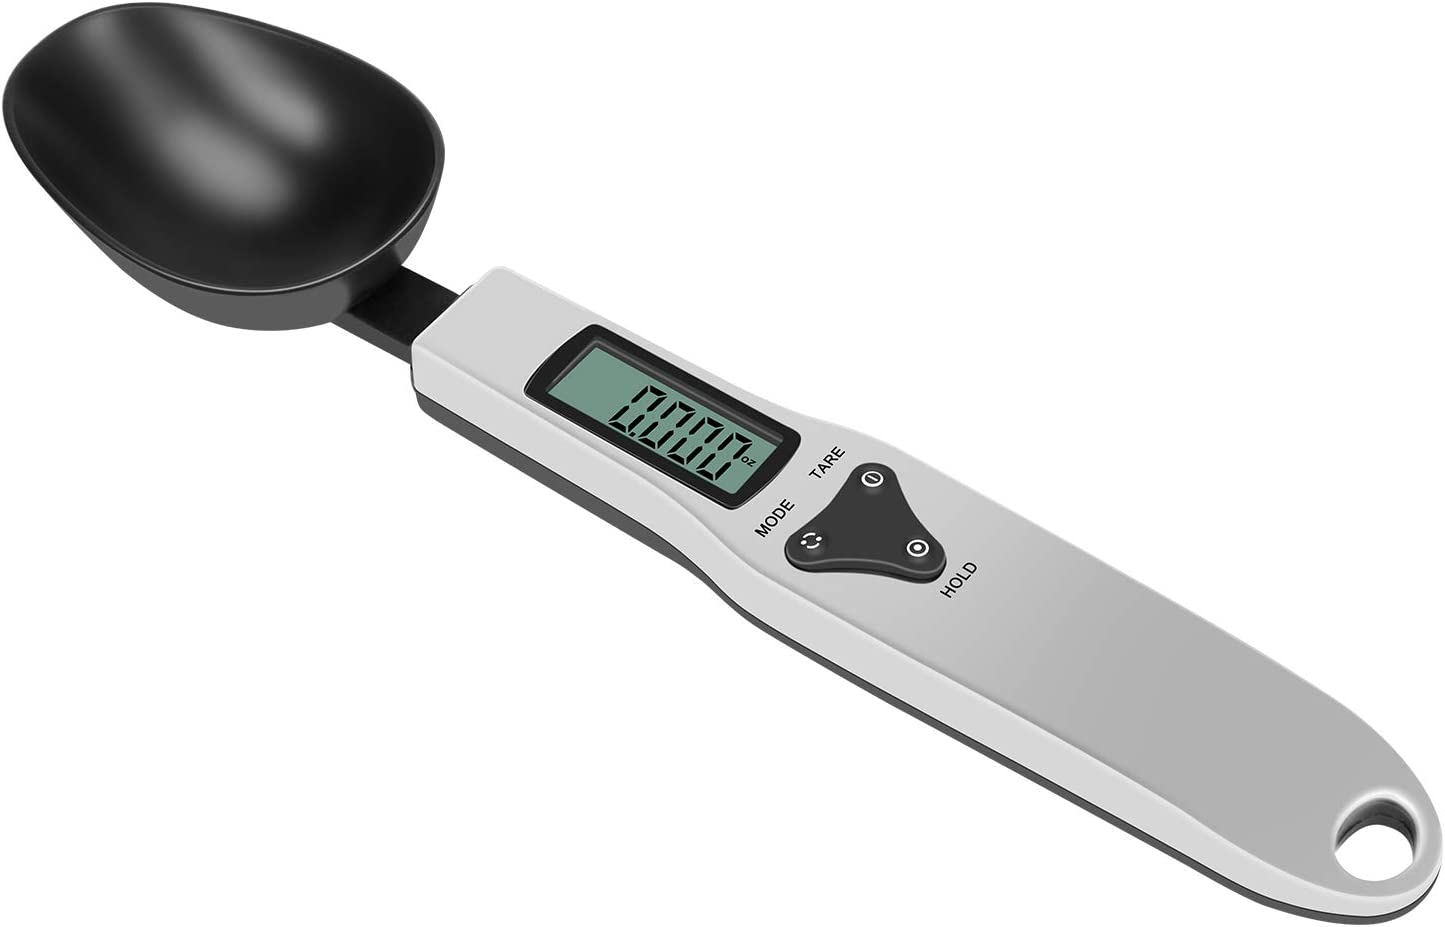 Kitchen Measuring Spoons Electronic Weighted Spoon, Food Scales digital weight grams and oz Stainless Steel Scale Gram, Measuring Scoops 500g/0.1g Baking Spoon Scale with LCD Display